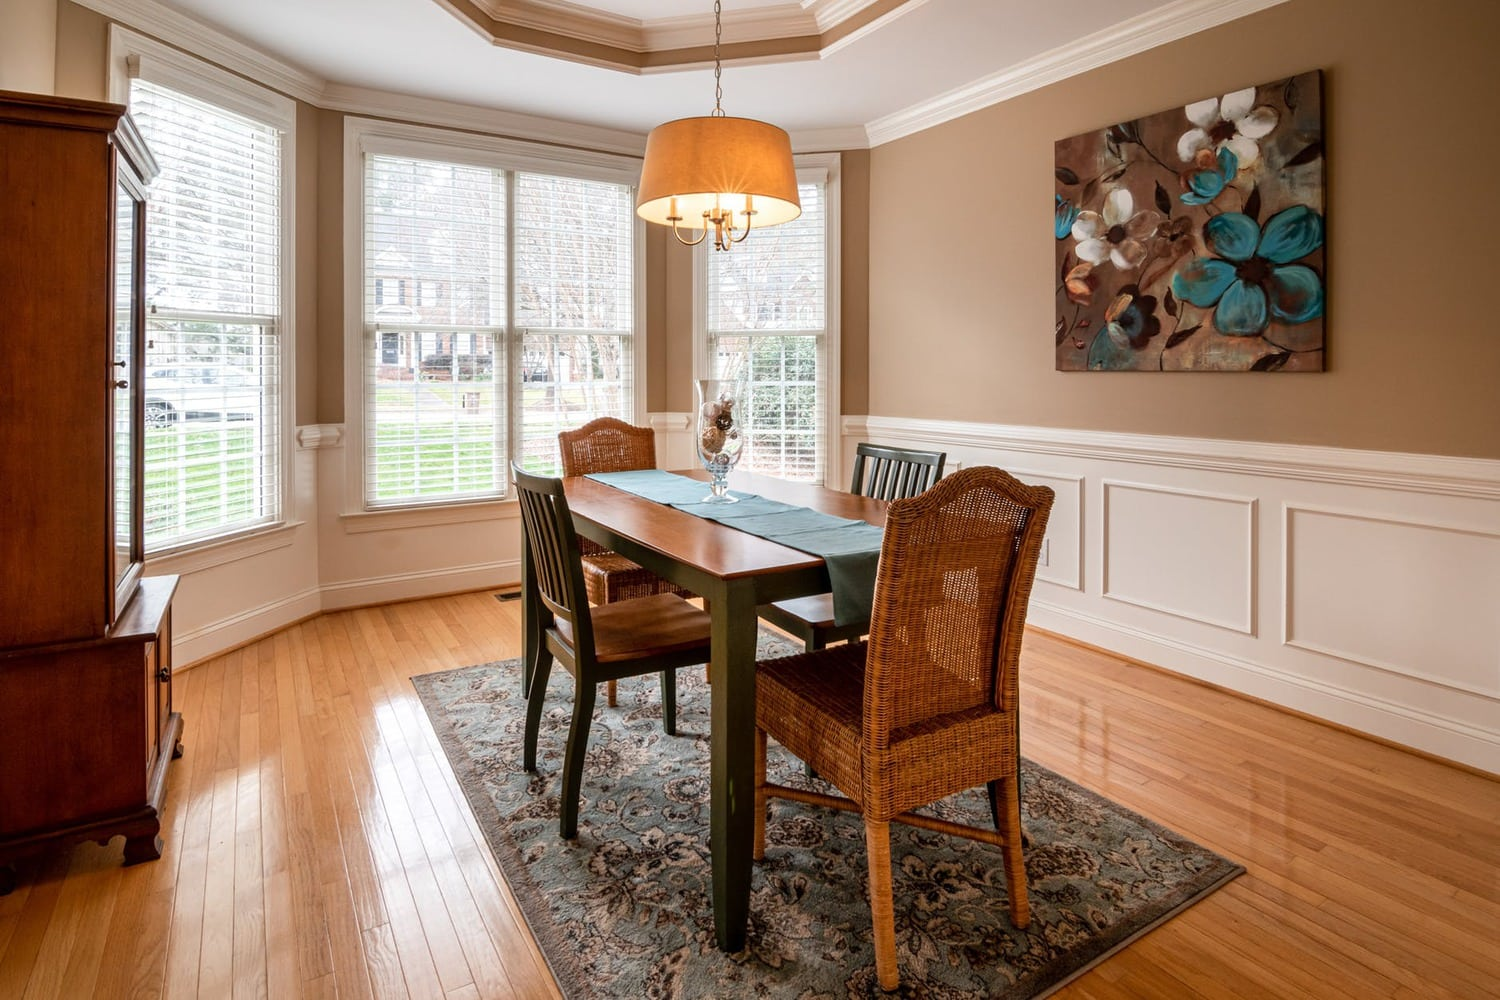 rug placement for dining room. Rug, brown wooden table with chairs